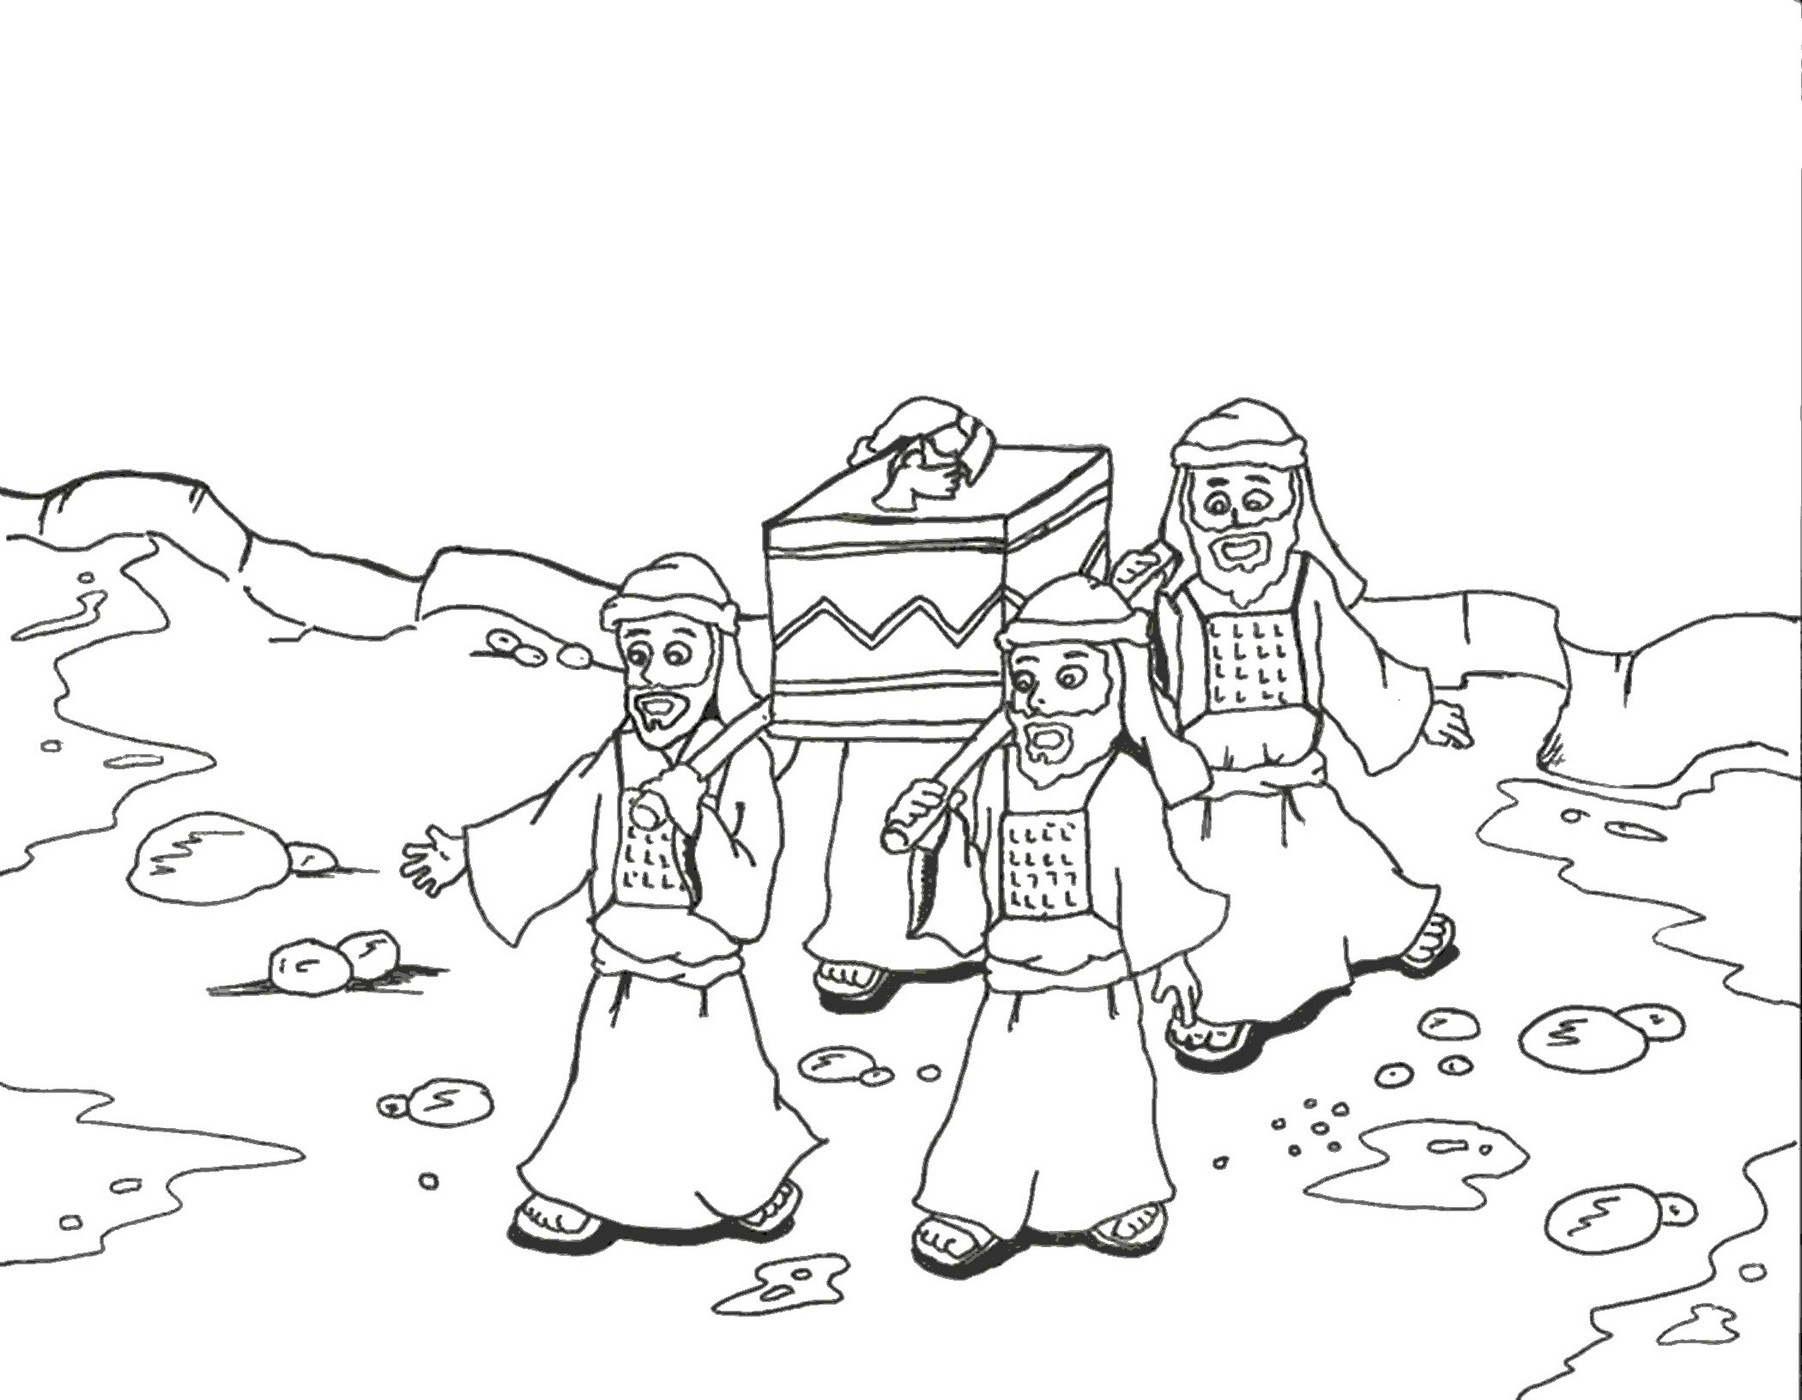 Joshua Fought The Battle Of Jericho Coloring Page Collection Joshua Tree Coloring Pages For Adults Pictures